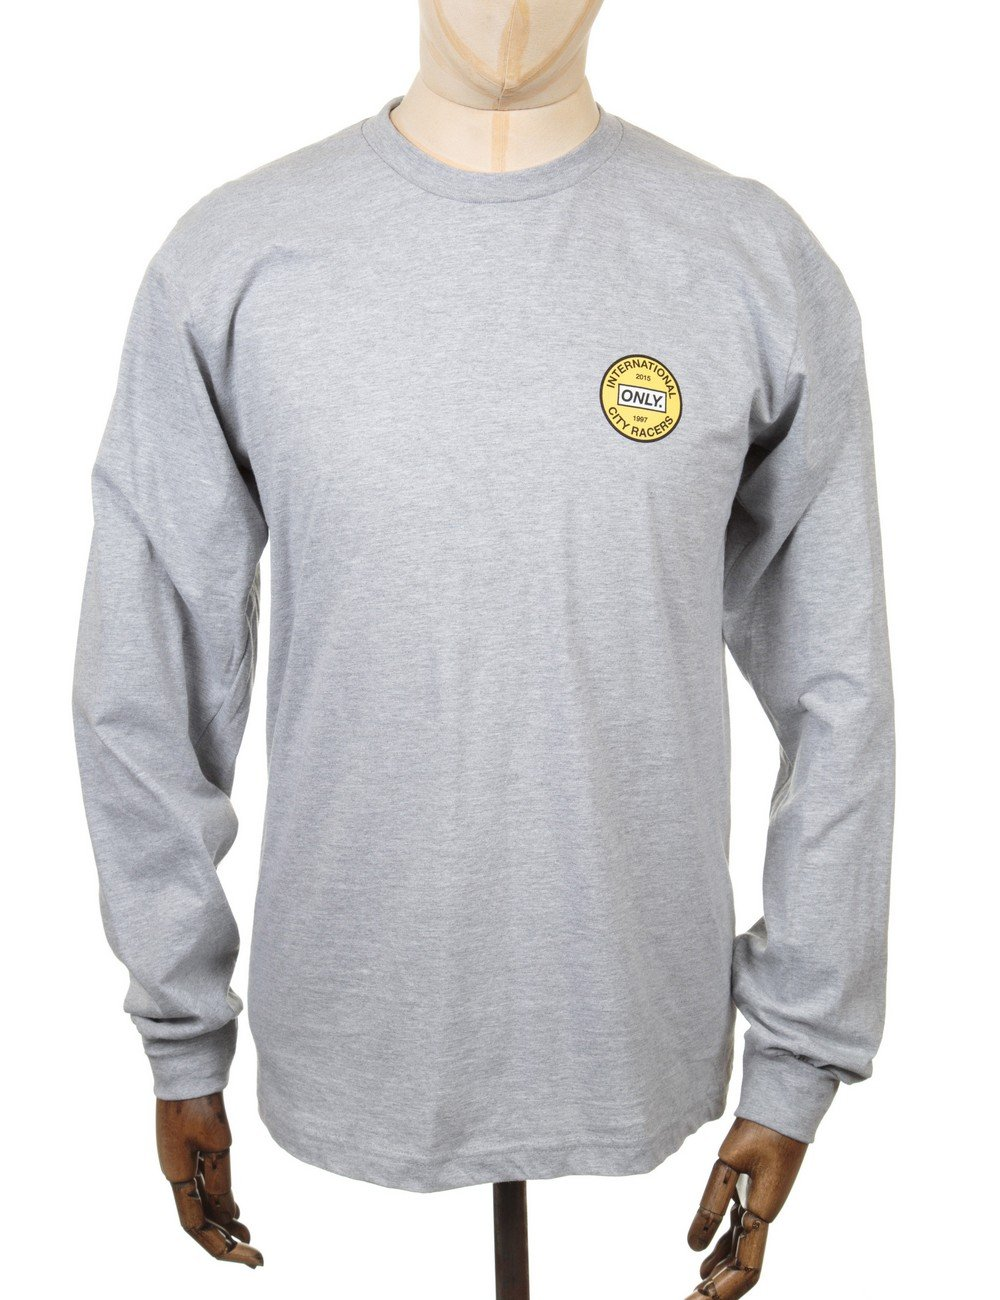 only ny clothing l s city racers t shirt grey